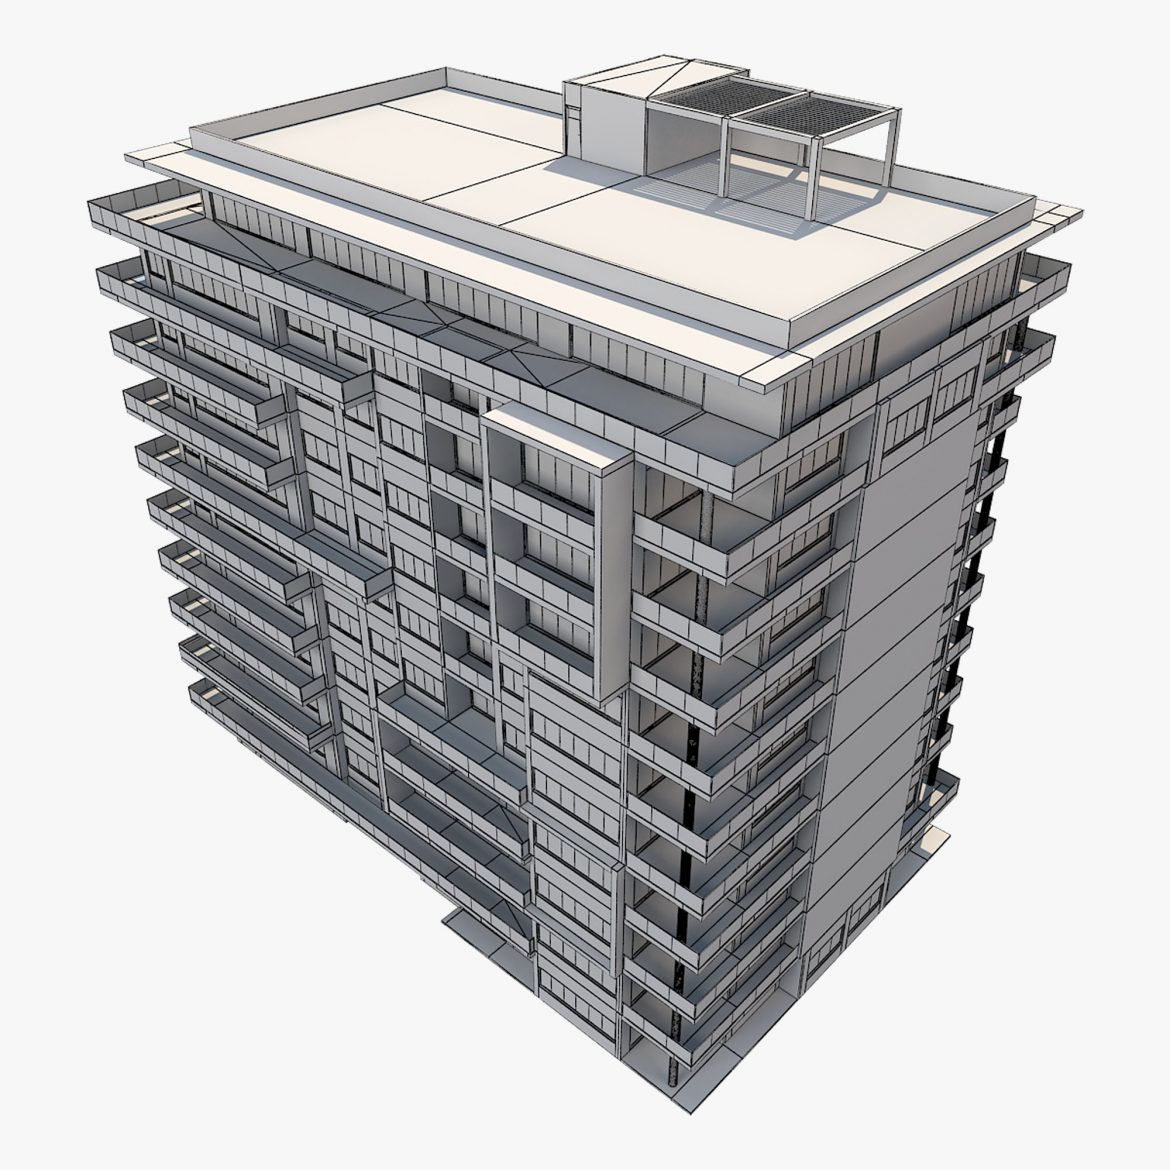 apartment building_61 3d model 3ds blend c4d fbx max ds max plugin ma mb obj 303419